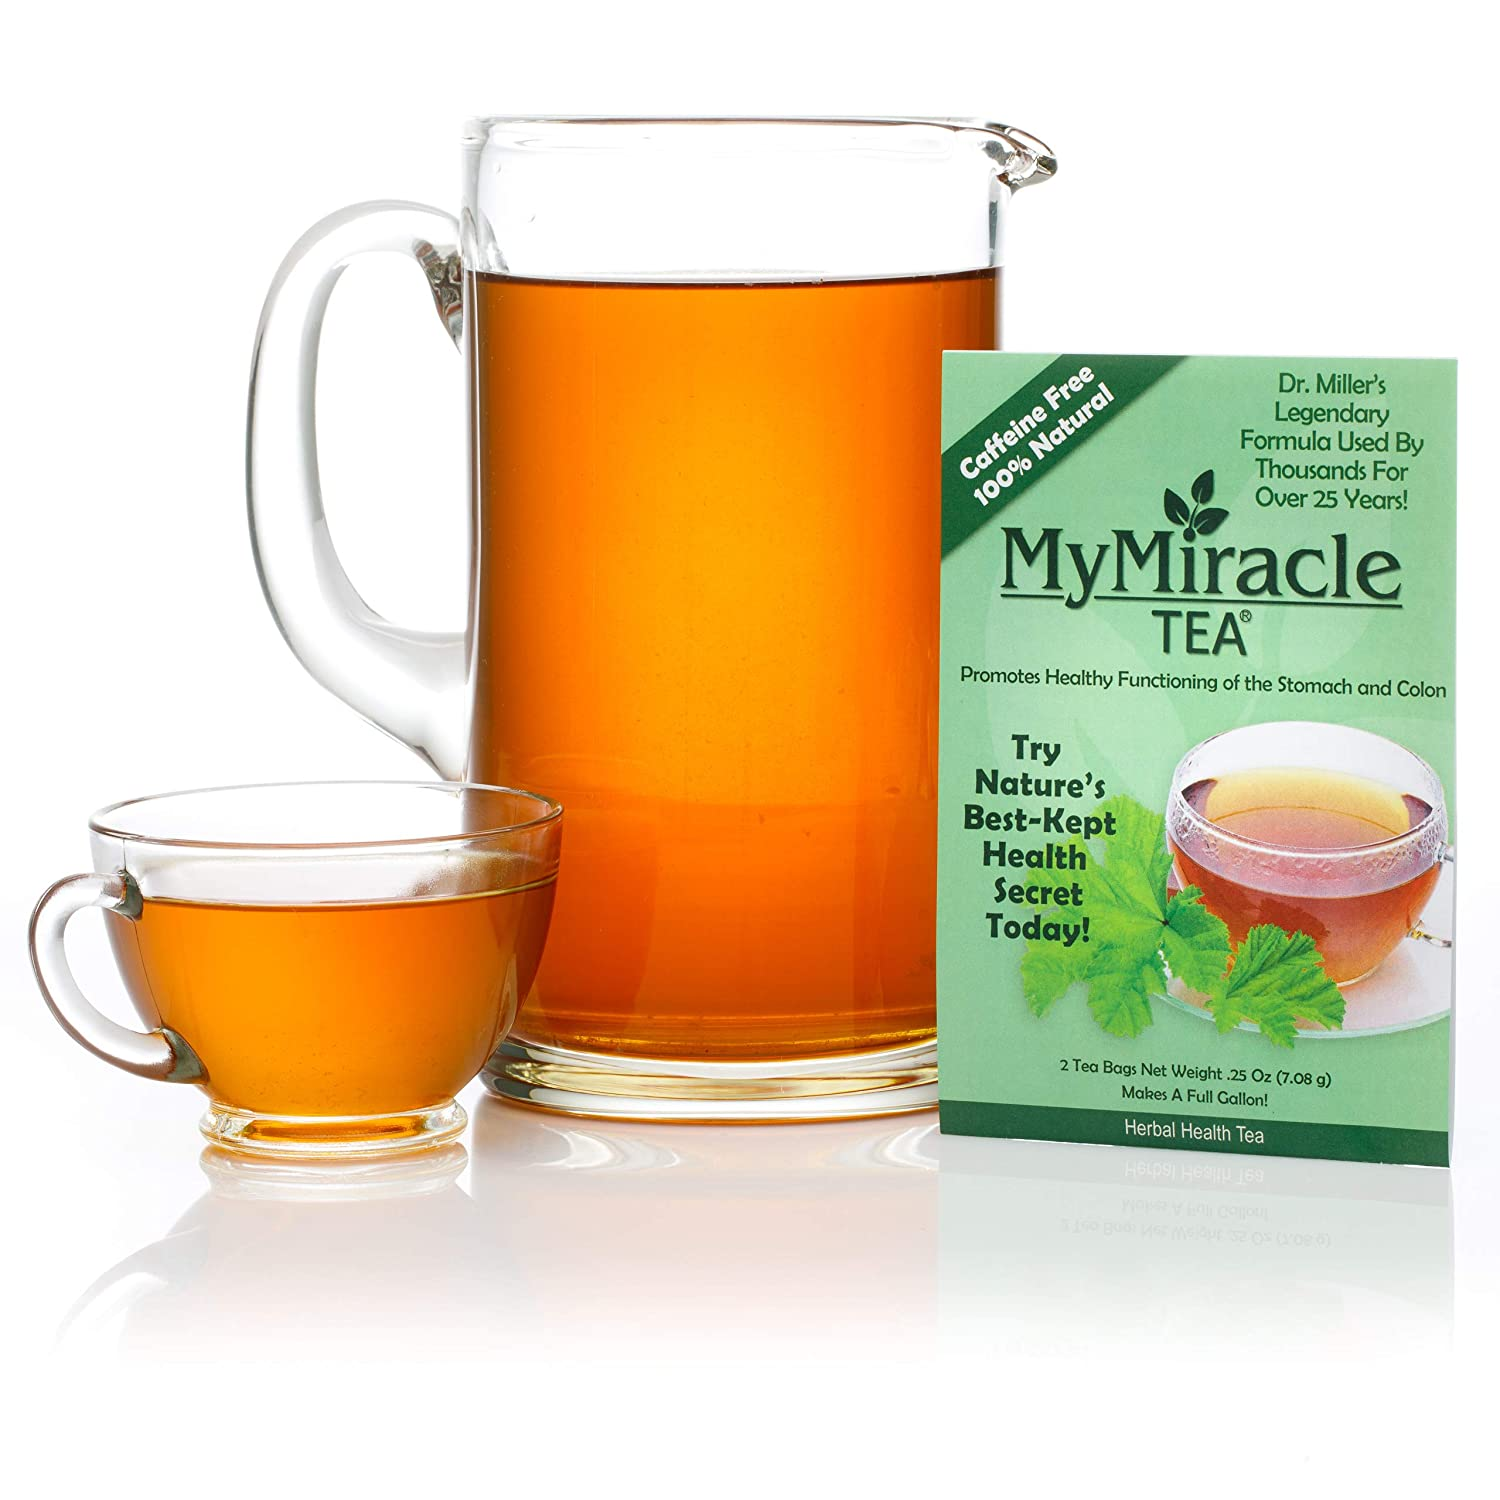 My Miracle Tea – Colon Cleanse, Constipation Relief, and All-Natural Detox Tea – 1 Month Supply Makes 4 Gallons